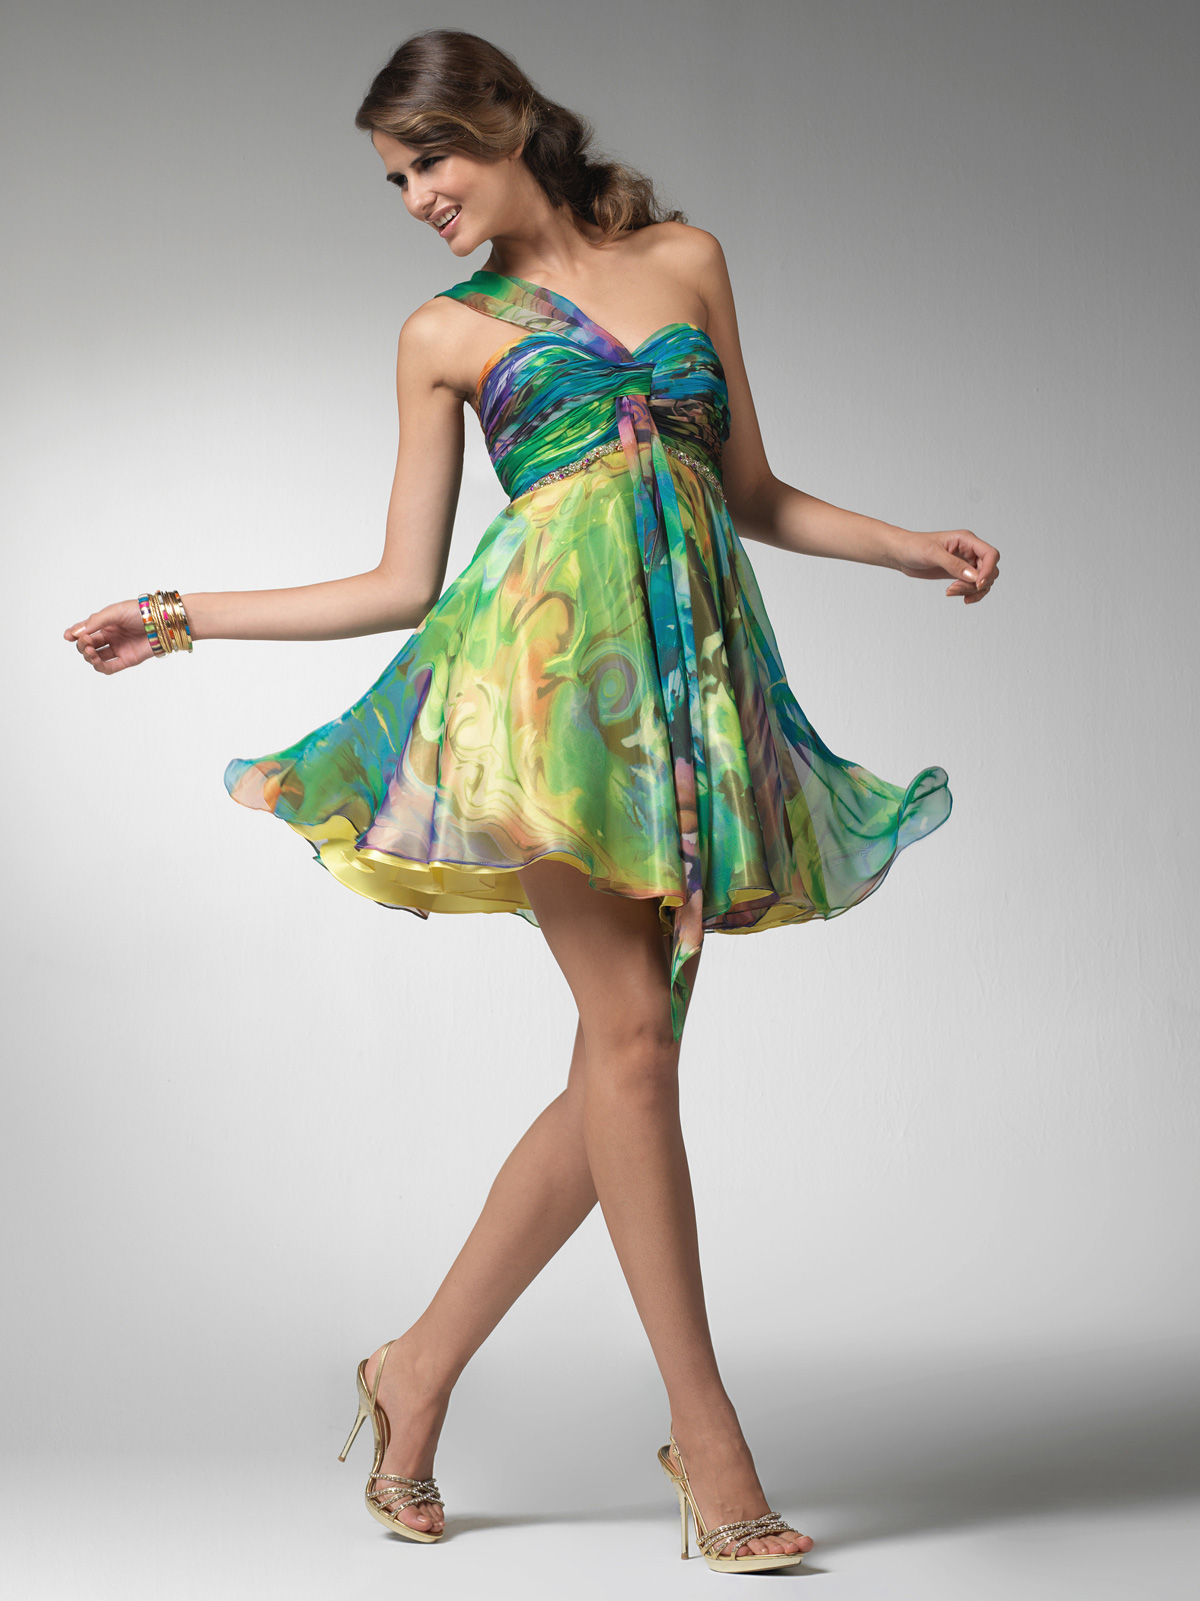 Prom dress giveaway for St. Patrick\'s Day!   Prom dresses and gowns